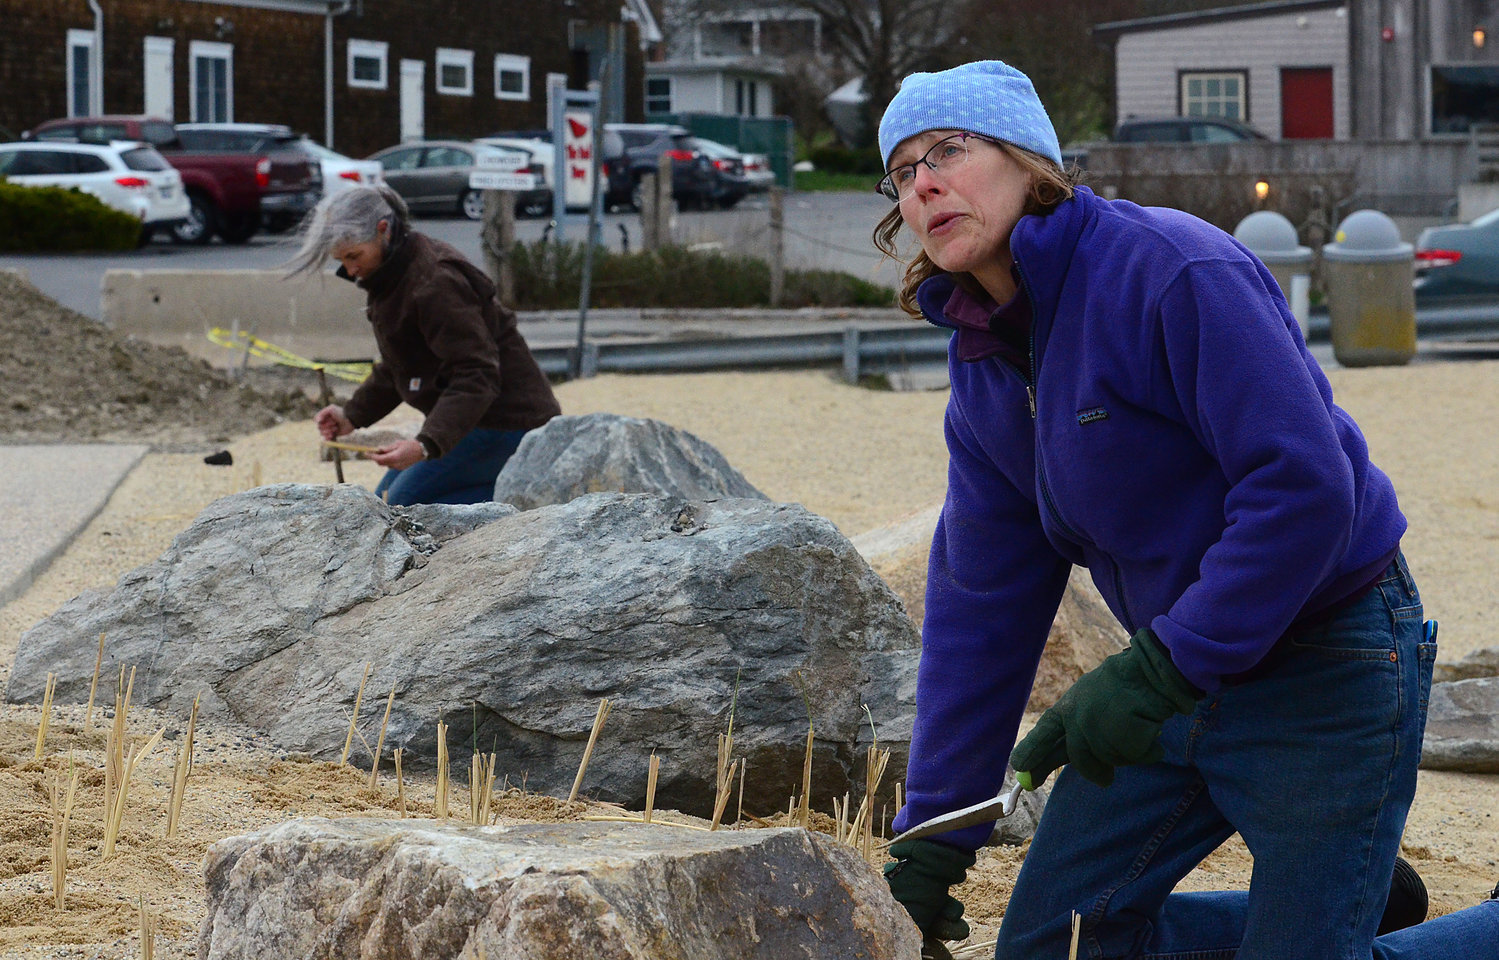 Amidst the boulder installation, Patricia Hilton (left) and Wenley Ferguson plant beach grass starters in the sand.